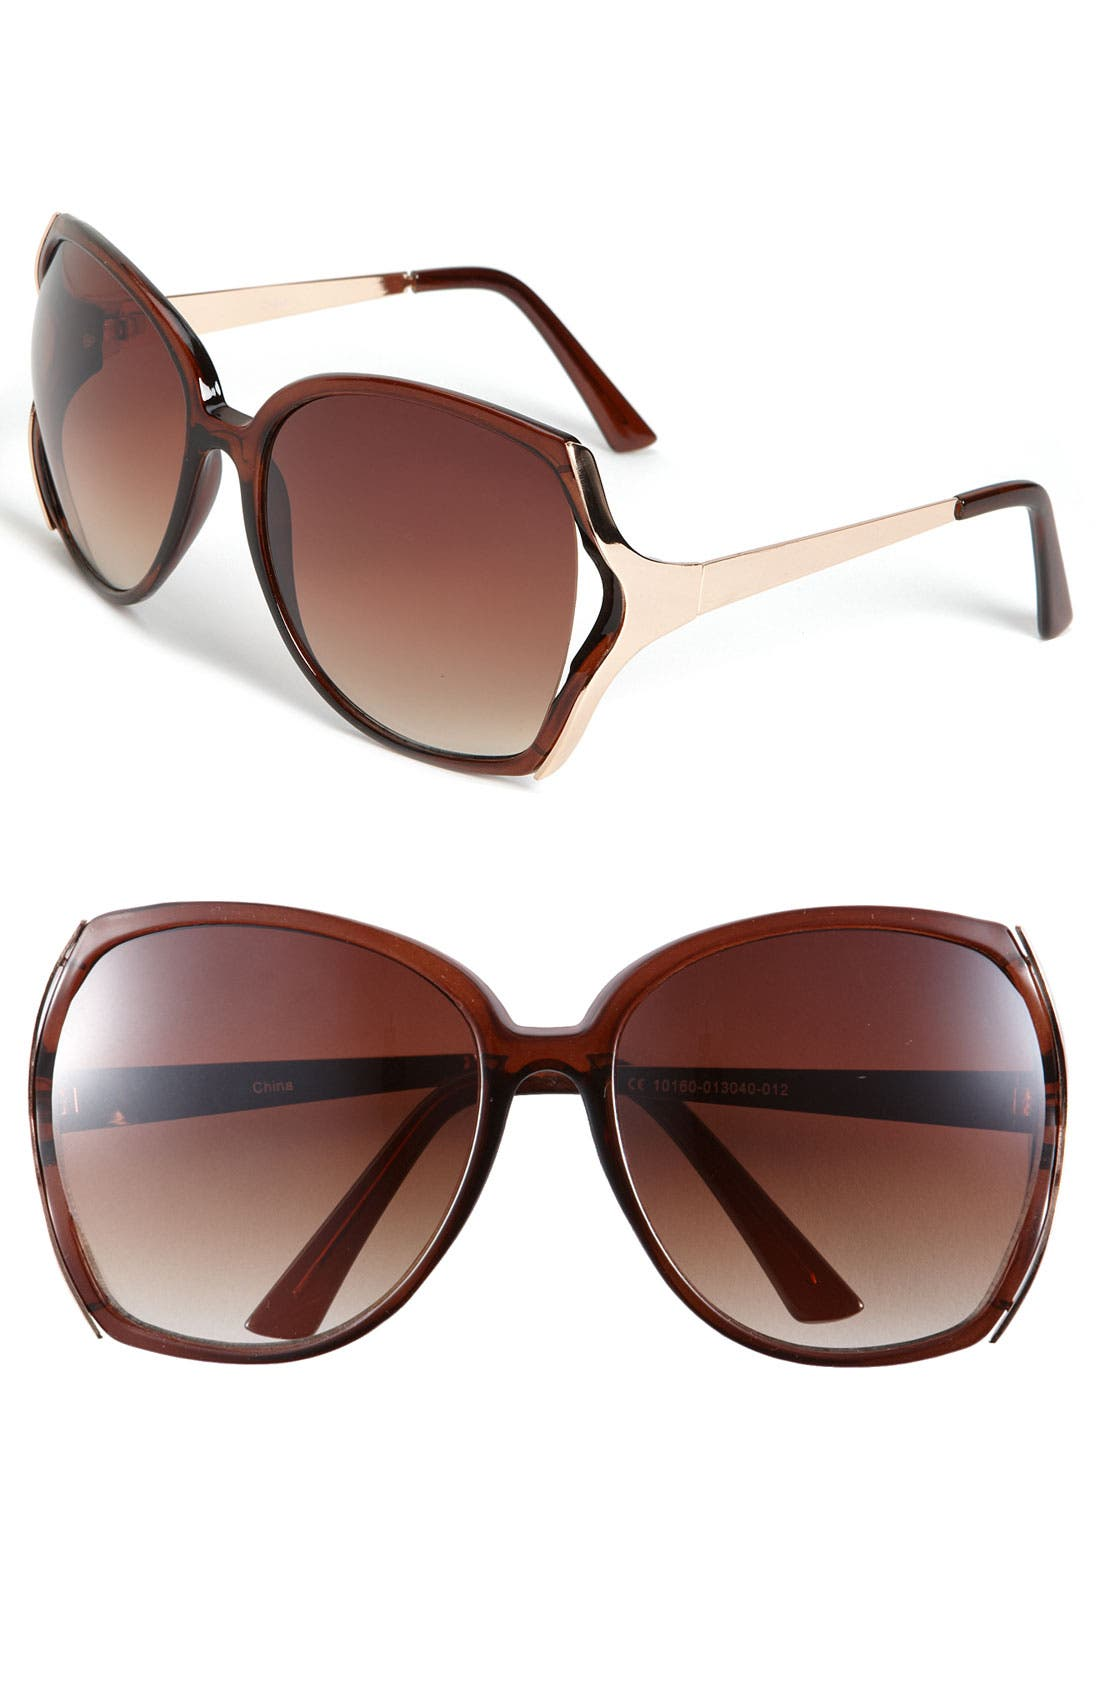 Alternate Image 1 Selected - Icon Eyewear 'Paris' Sunglasses (2 for $20)